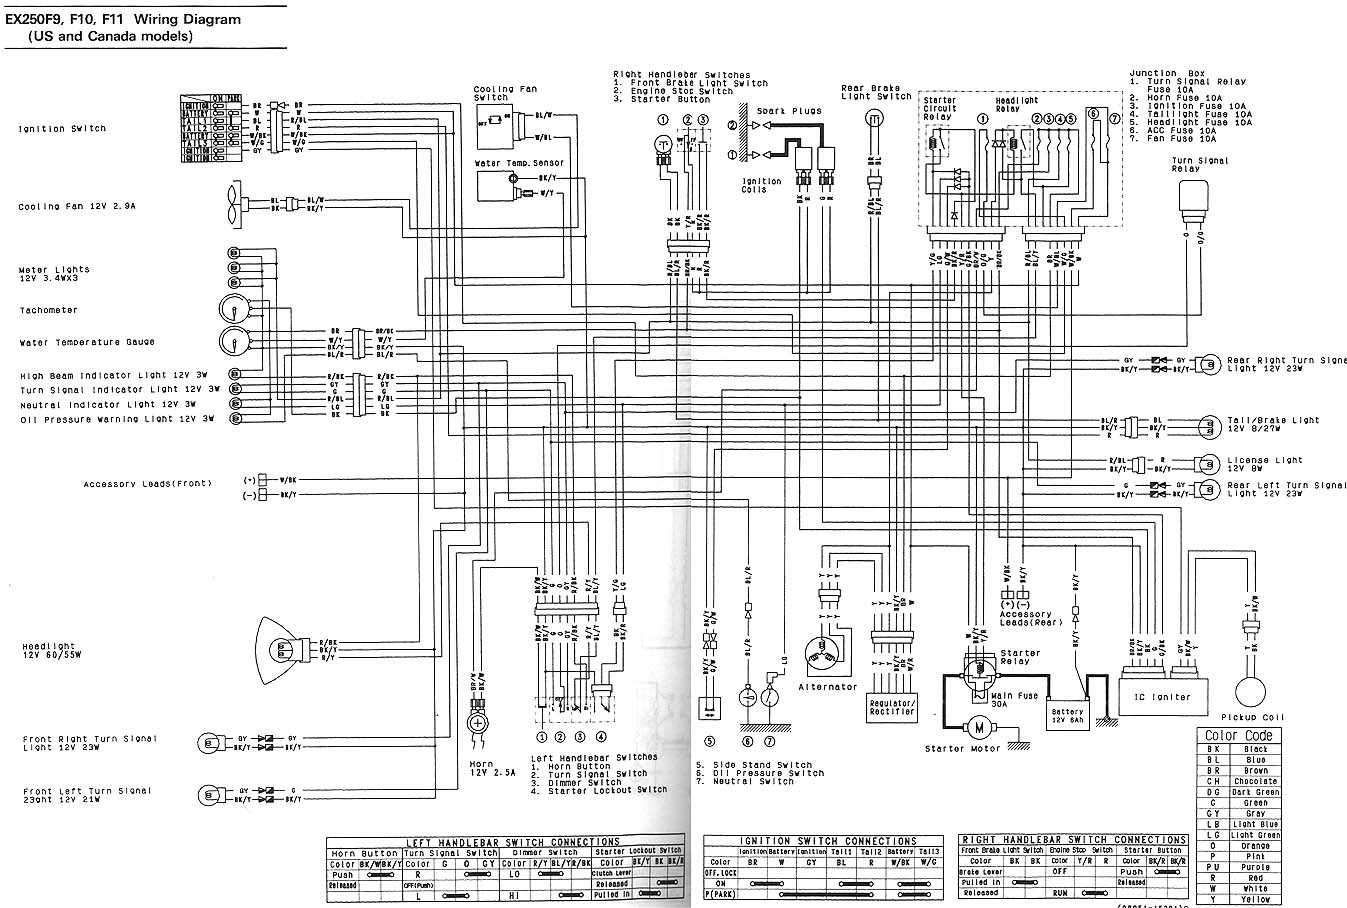 hight resolution of ex 650 wiring diagram wiring diagram sample 2014 kawasaki ninja 650r wiring diagram kawasaki ninja 650 wiring diagram